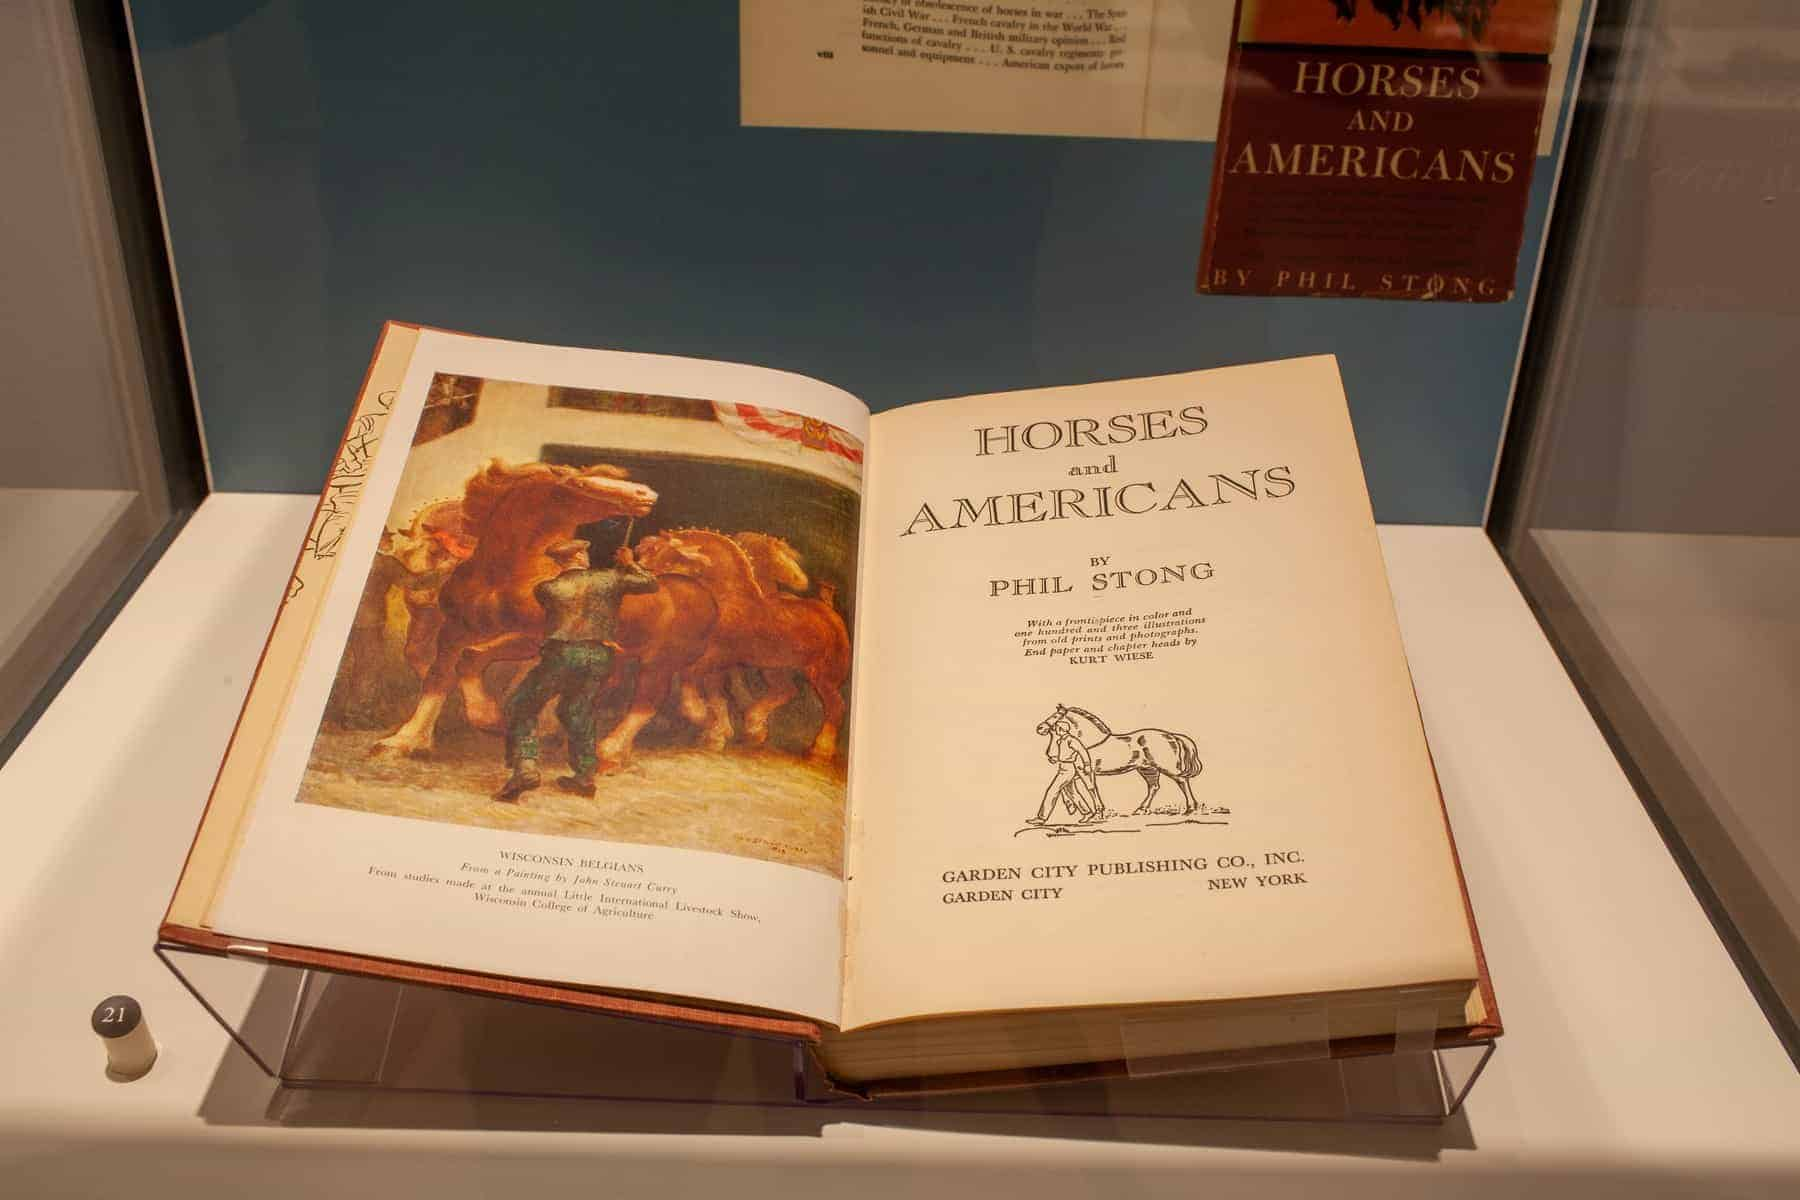 This case contains one book. It is open to a colorful illustration of a man with two horses and to the title page.